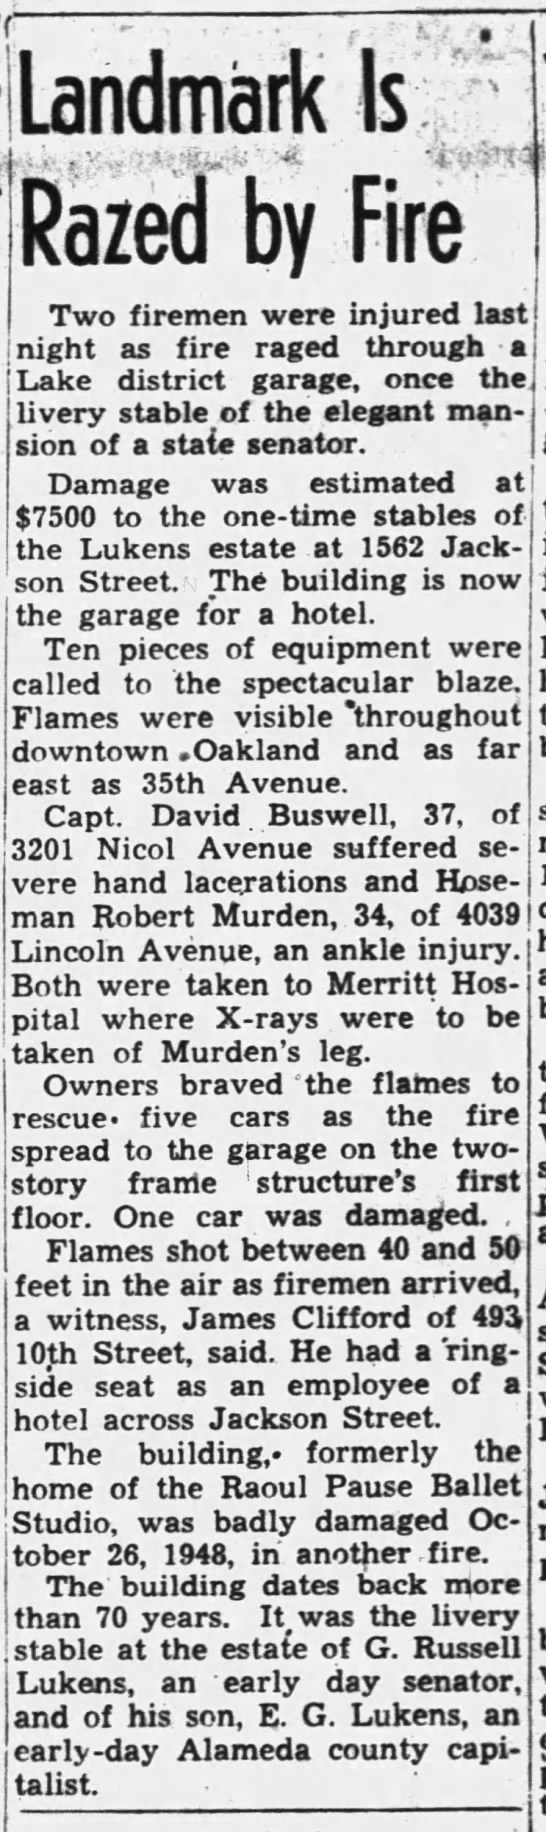 Landmark Is Razed By Fire - Mar 23, 1952 -